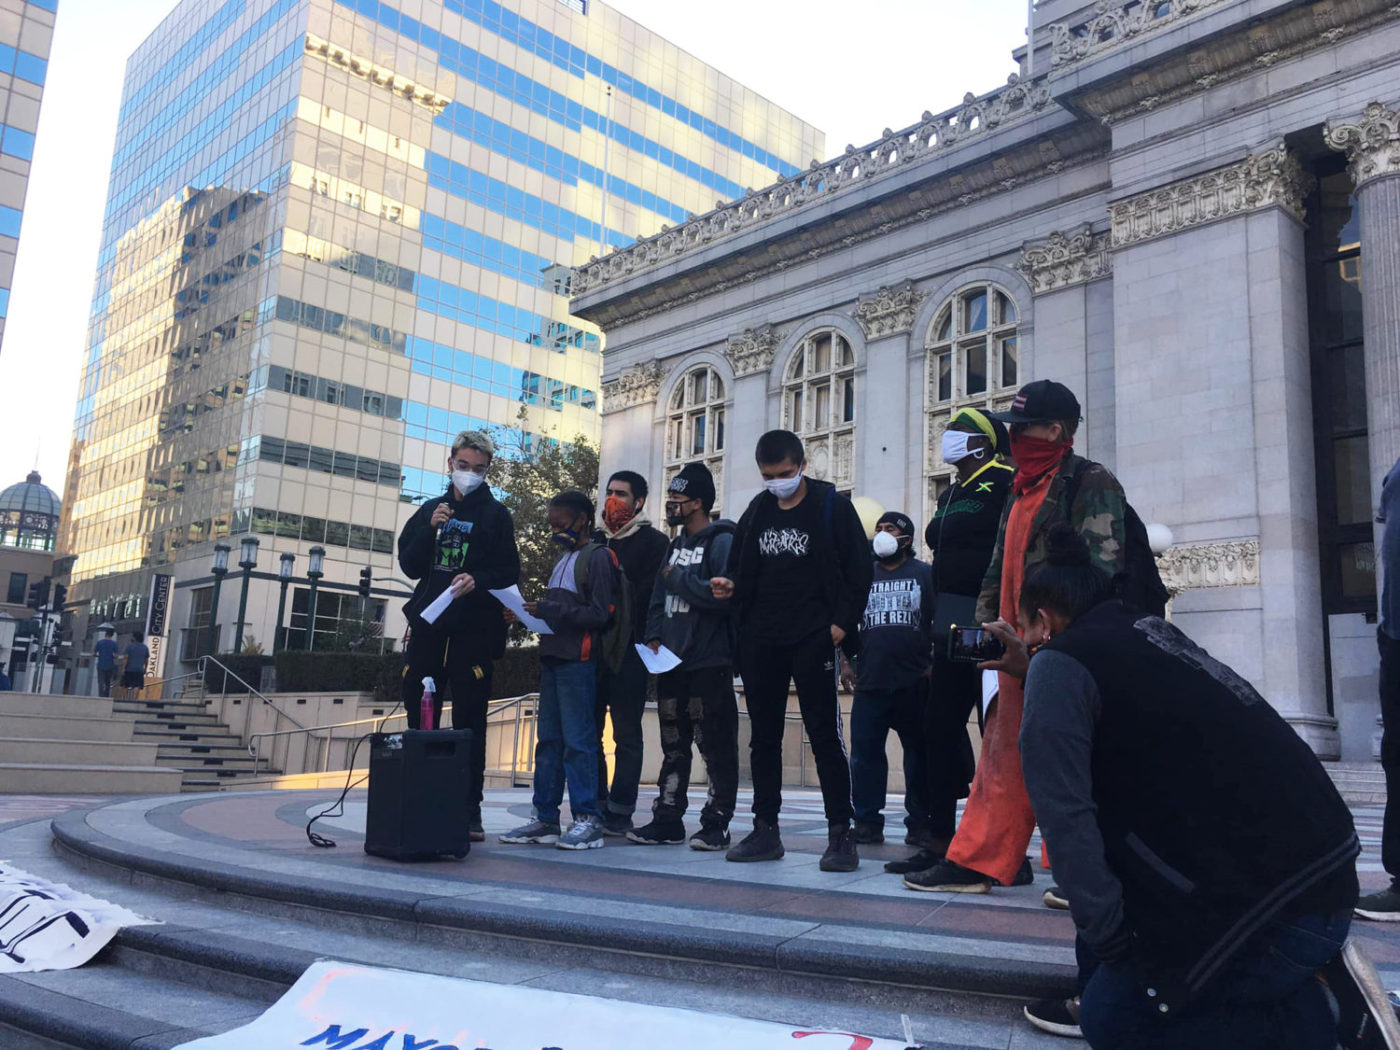 All-out-against-Encampment-Mgt-Plan-at-Oakland-City-Hall-1120-by-PNN-1400x1050, POOR 'tours' the Tenderloin demanding housing and reparations for 500 houseless San Franciscans facing motel evictions, Local News & Views